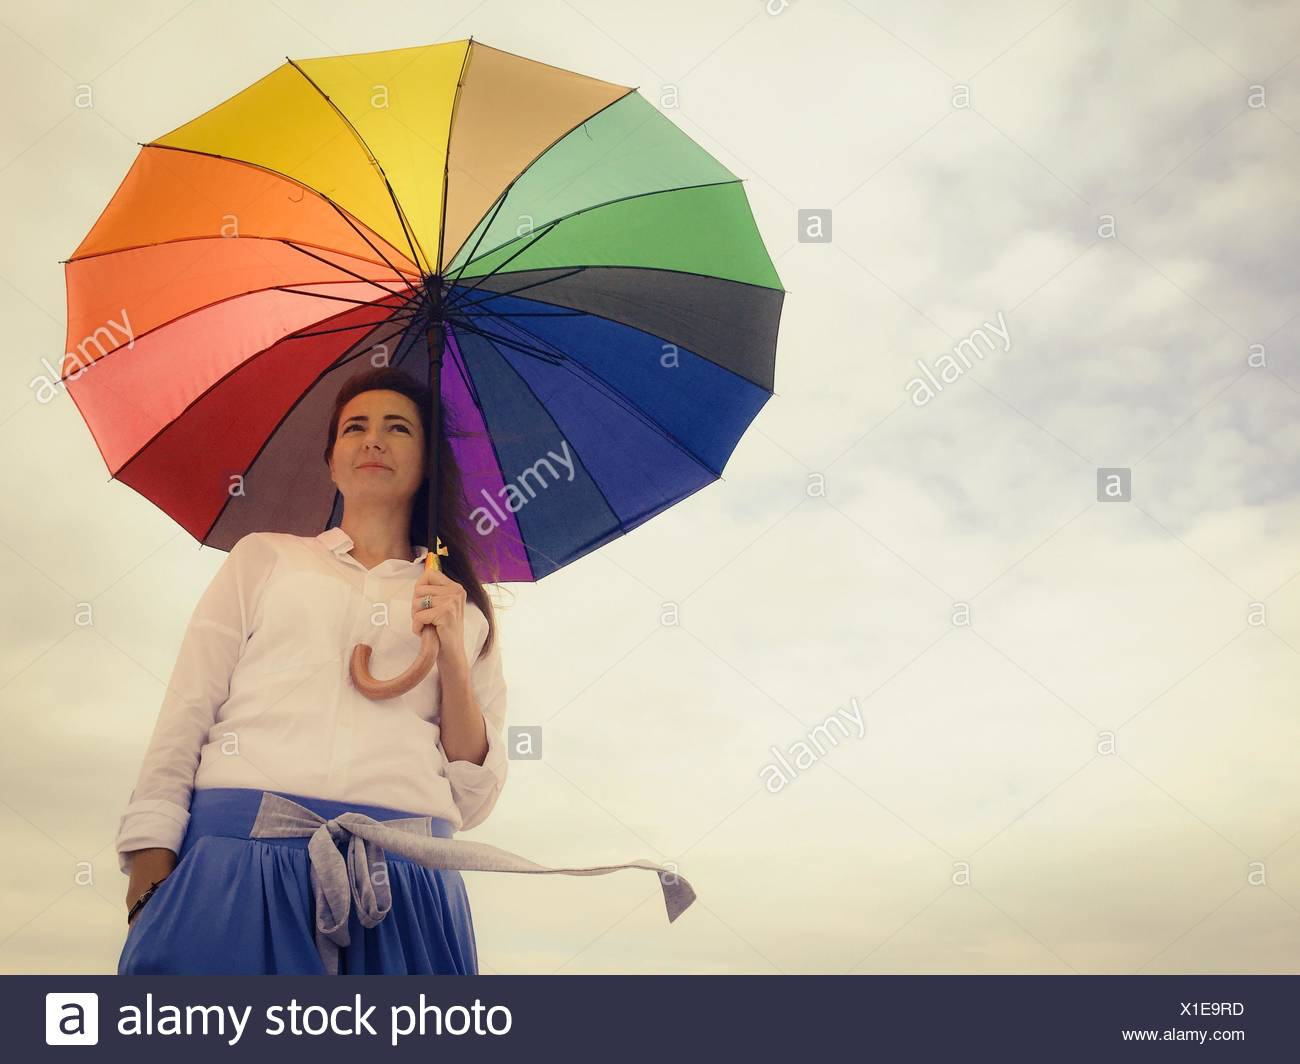 Low Angle View Of Beautiful Woman Standing With Multi Colored Umbrella Against Cloudy Sky Photo Stock